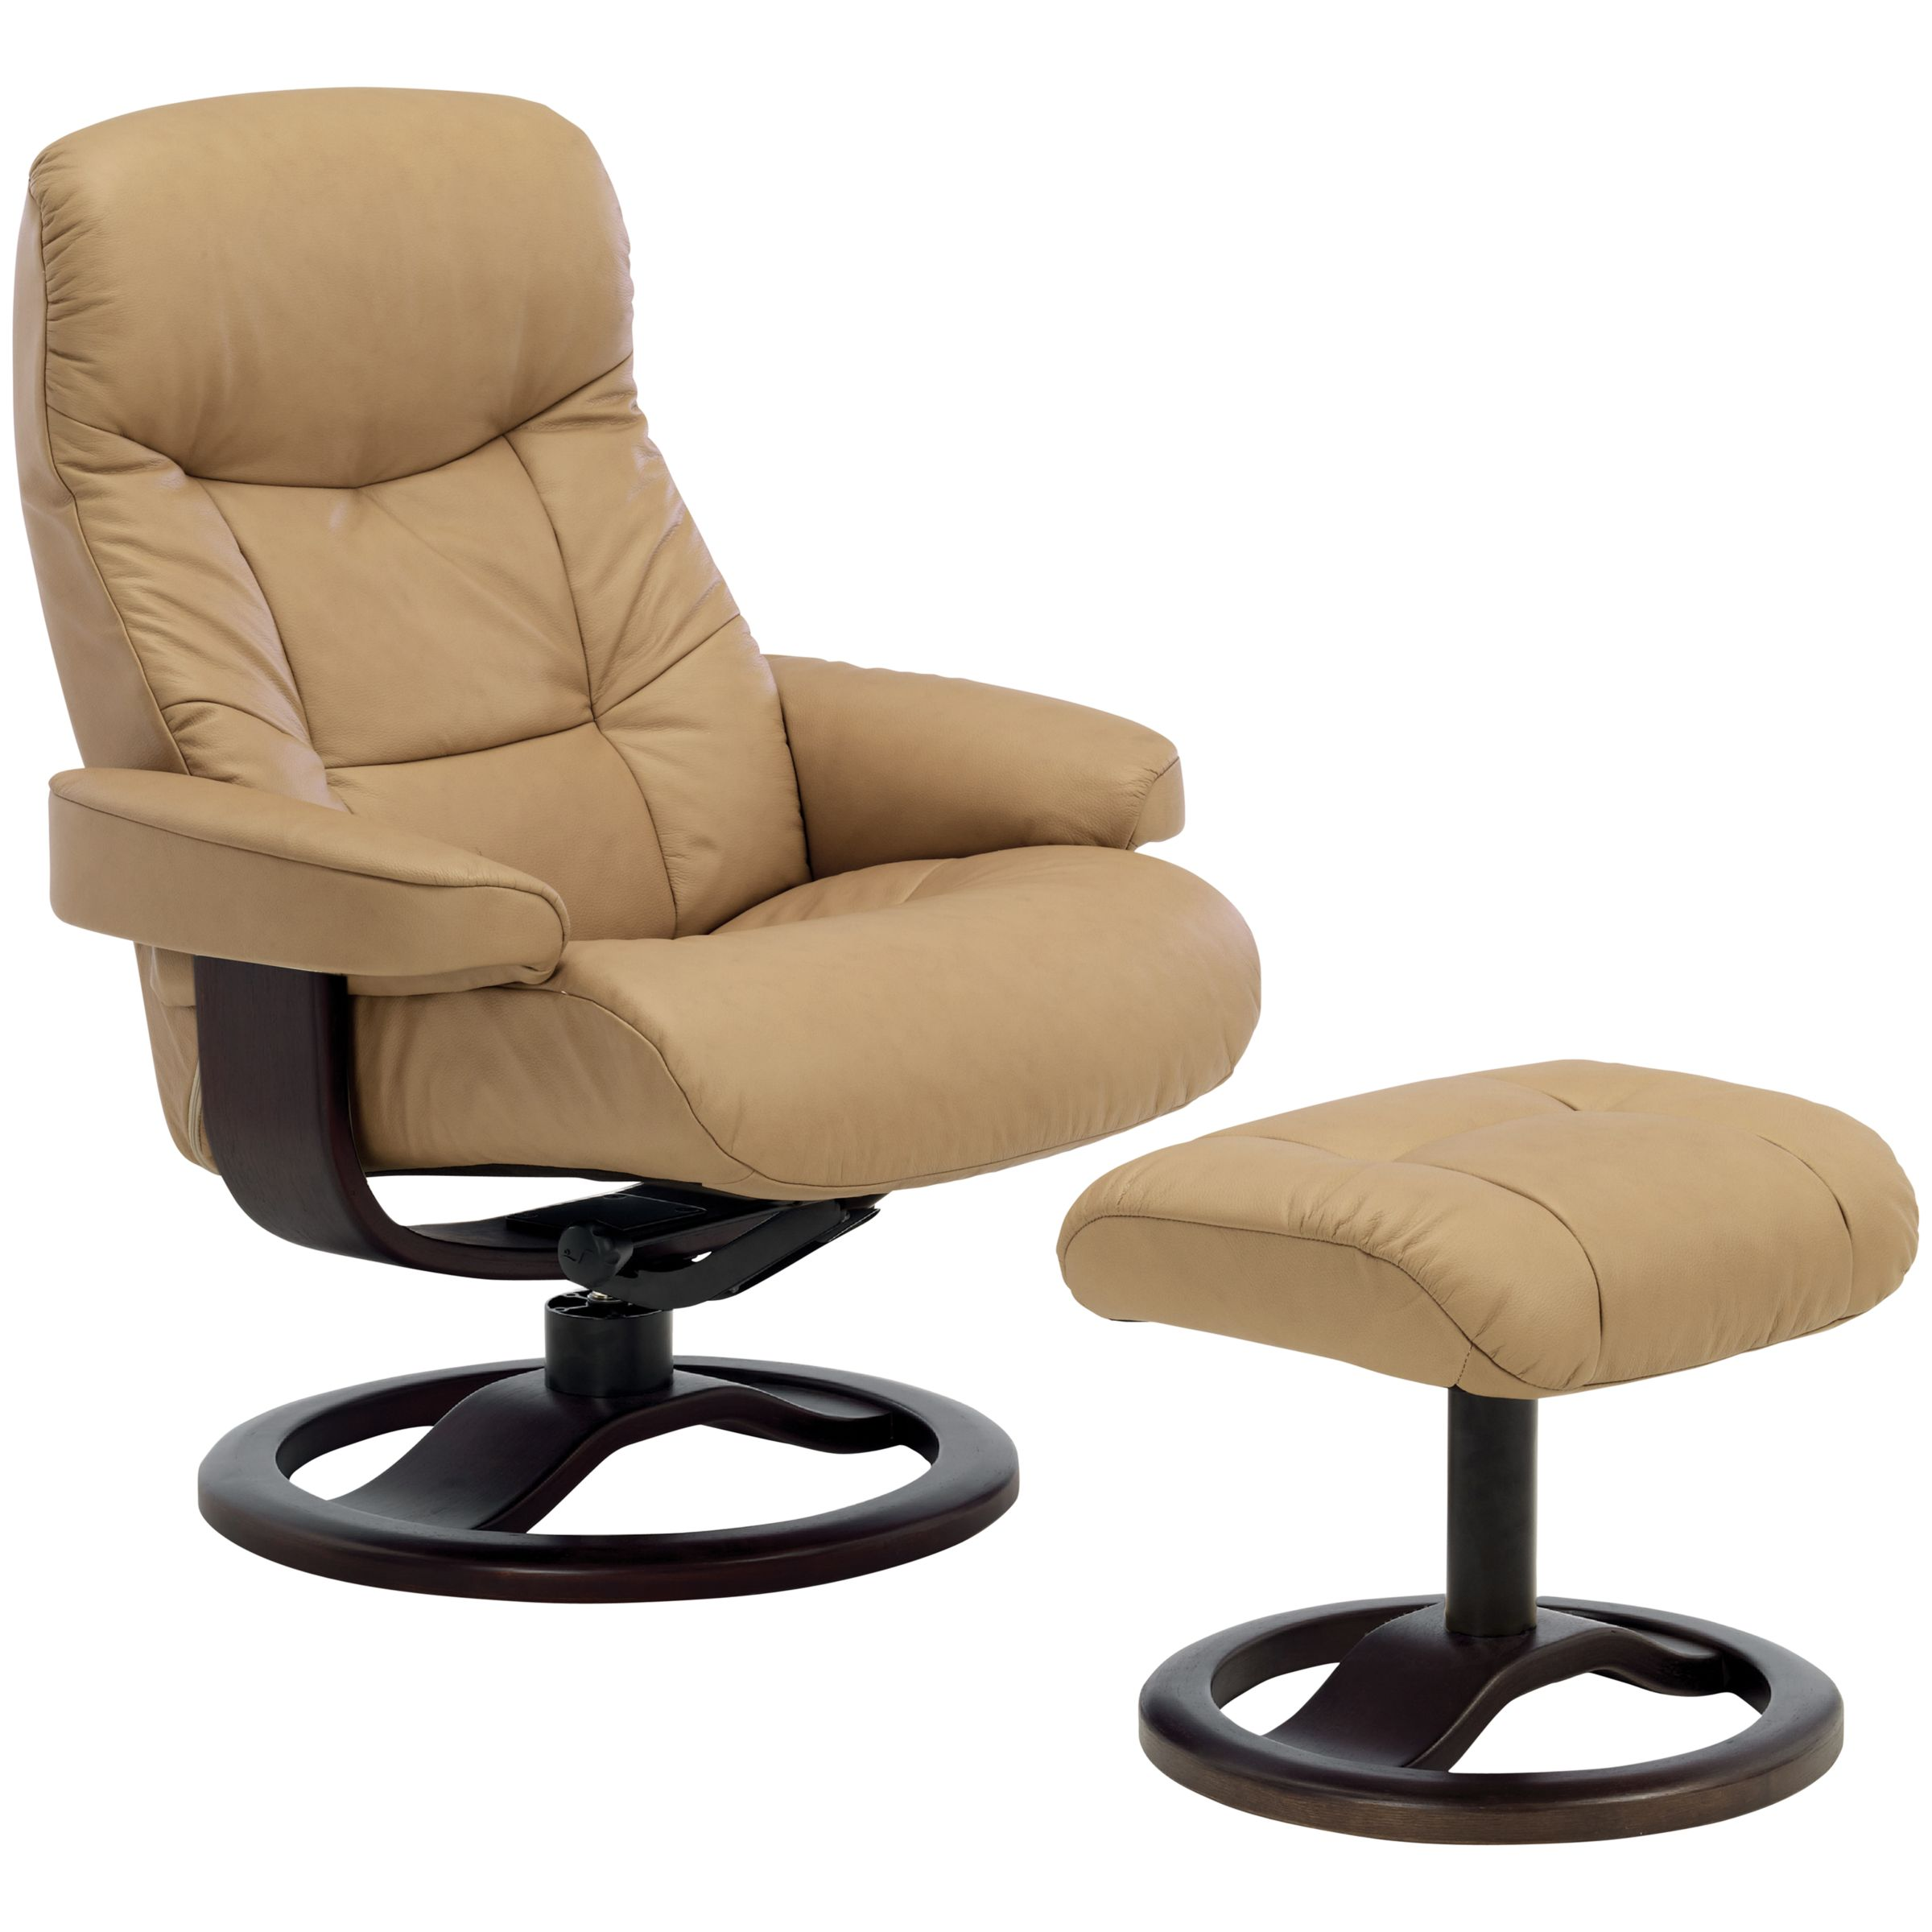 John Lewis Oslo Swivelling Recliner Armchair And Stool, Espresso Base, Sandel